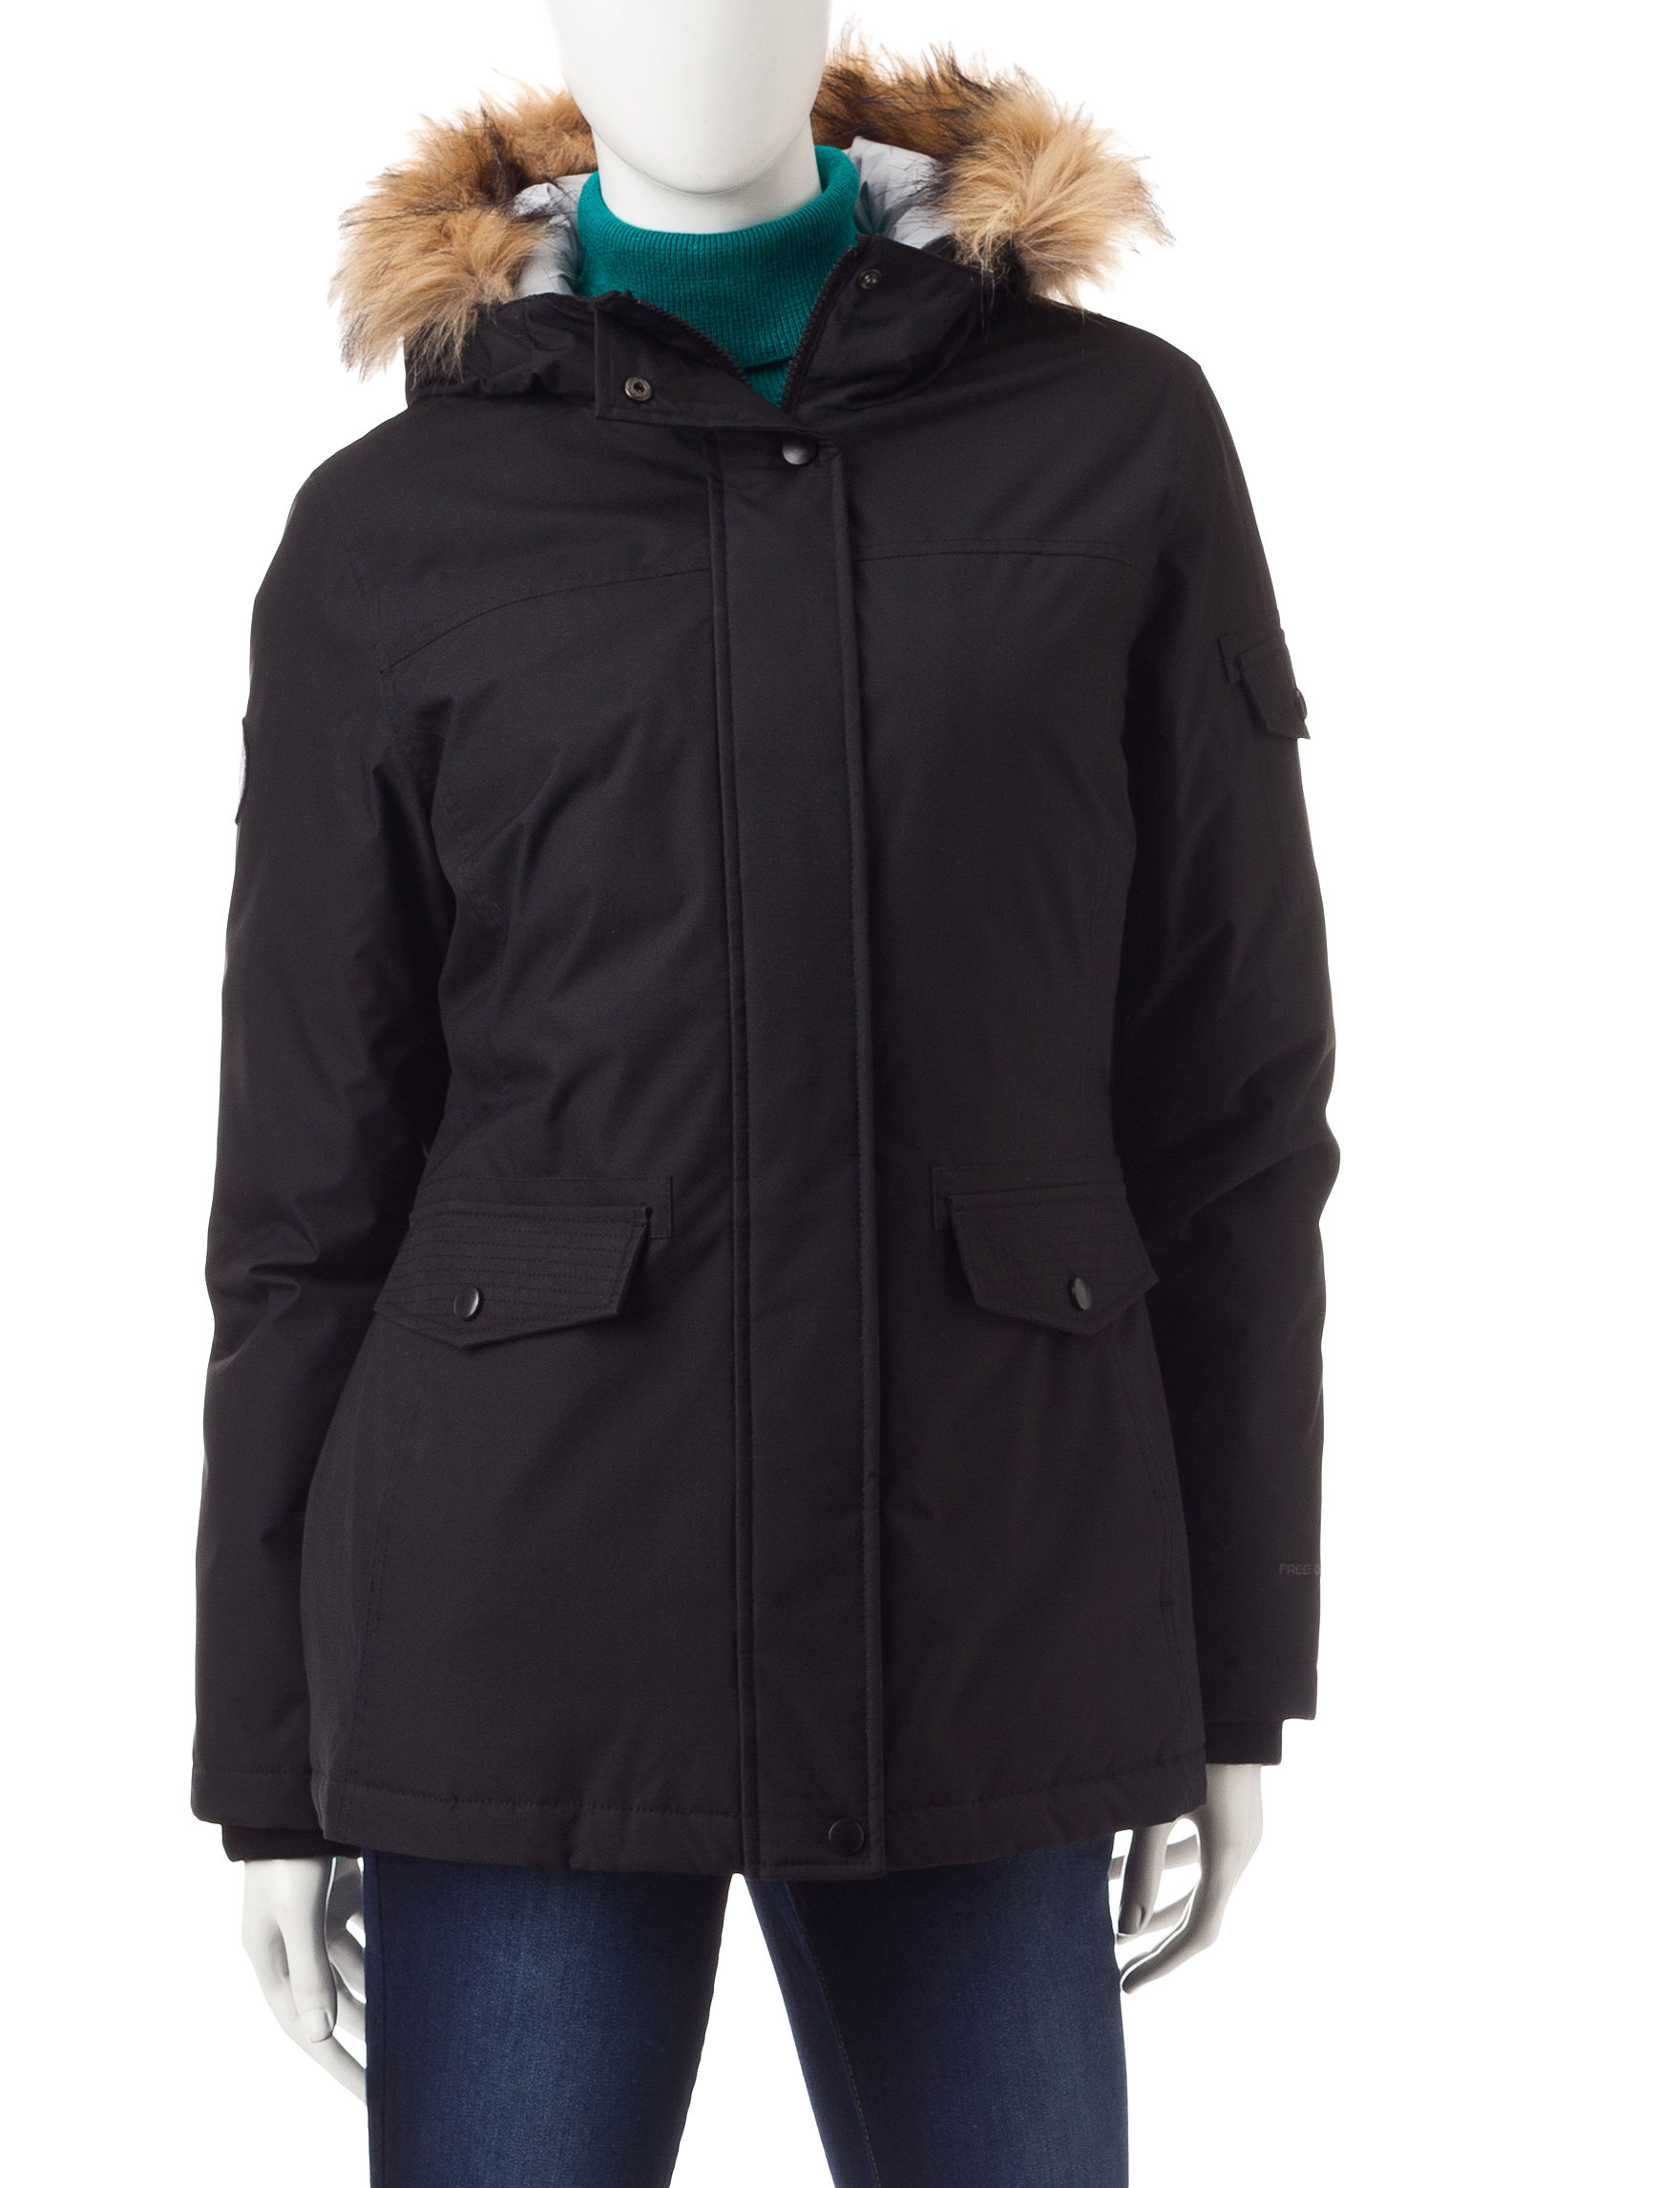 Free Country Black Puffer & Quilted Jackets